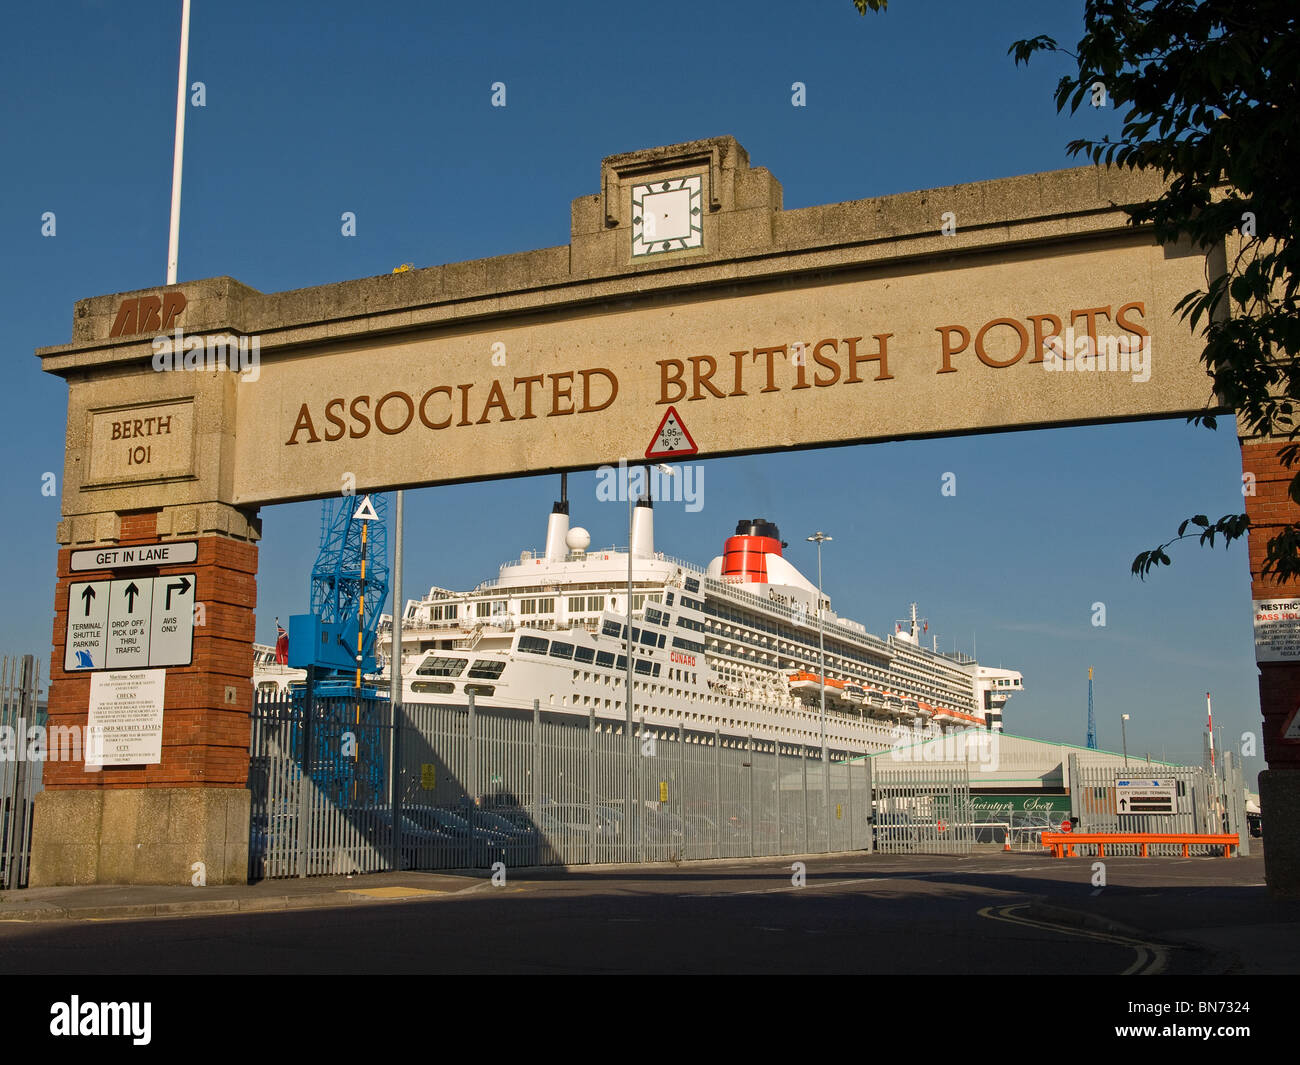 Berth 101 entrance to Associated British Ports Southampton England UK with Cunard's ocean liner Queen Mary 2 - Stock Image